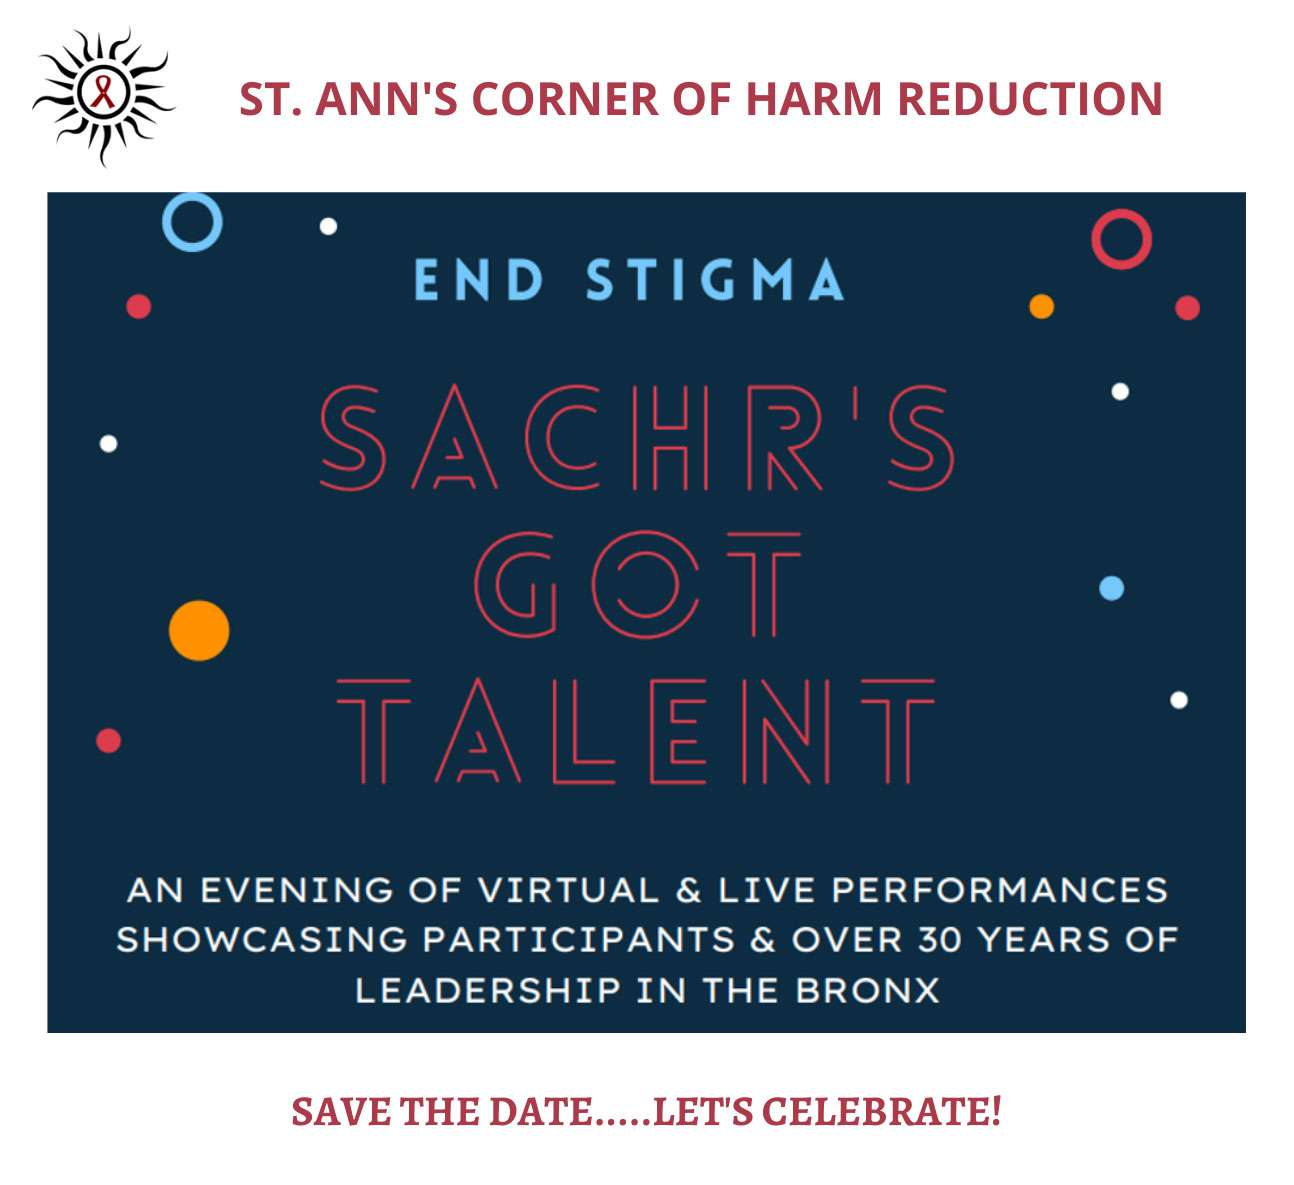 SACHR is a harm reduction agency with a mission to serve at-risk members of the Bronx community through a range of social services.